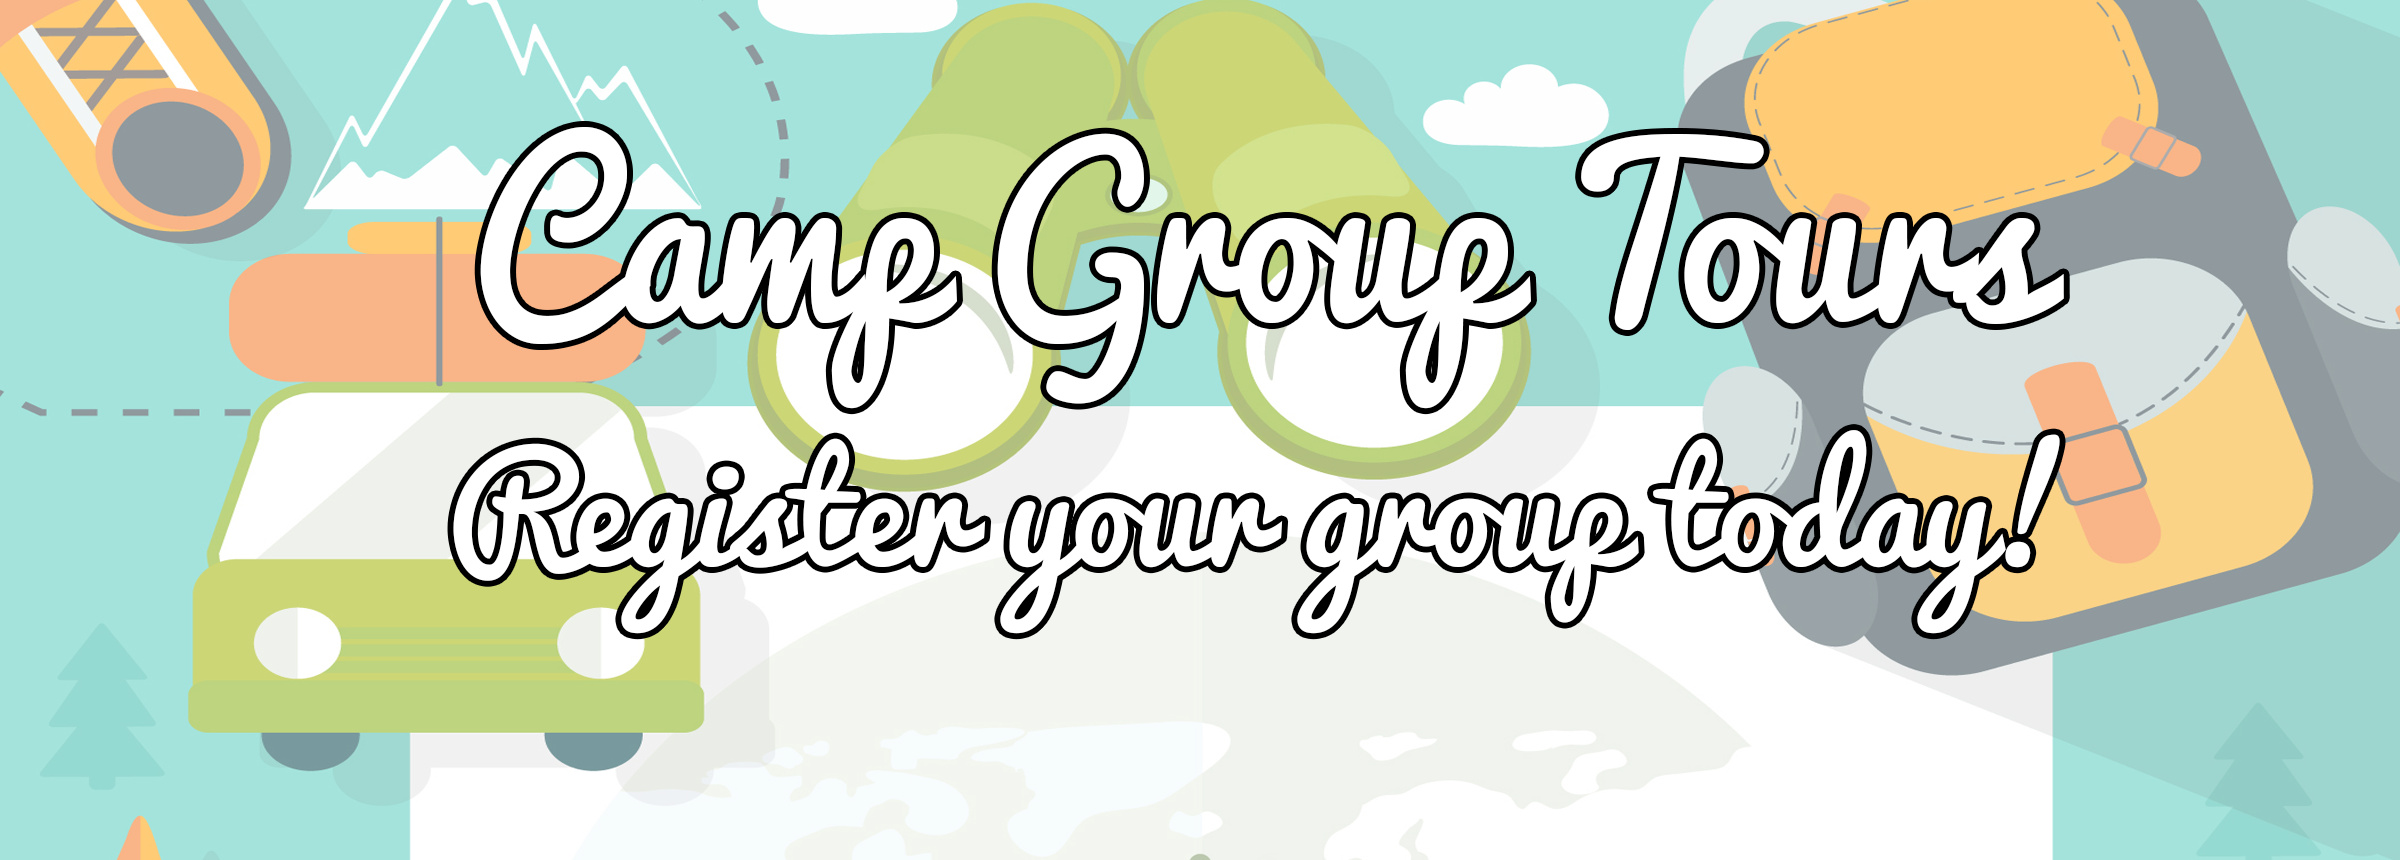 Camp Group Tours - Register your group today!